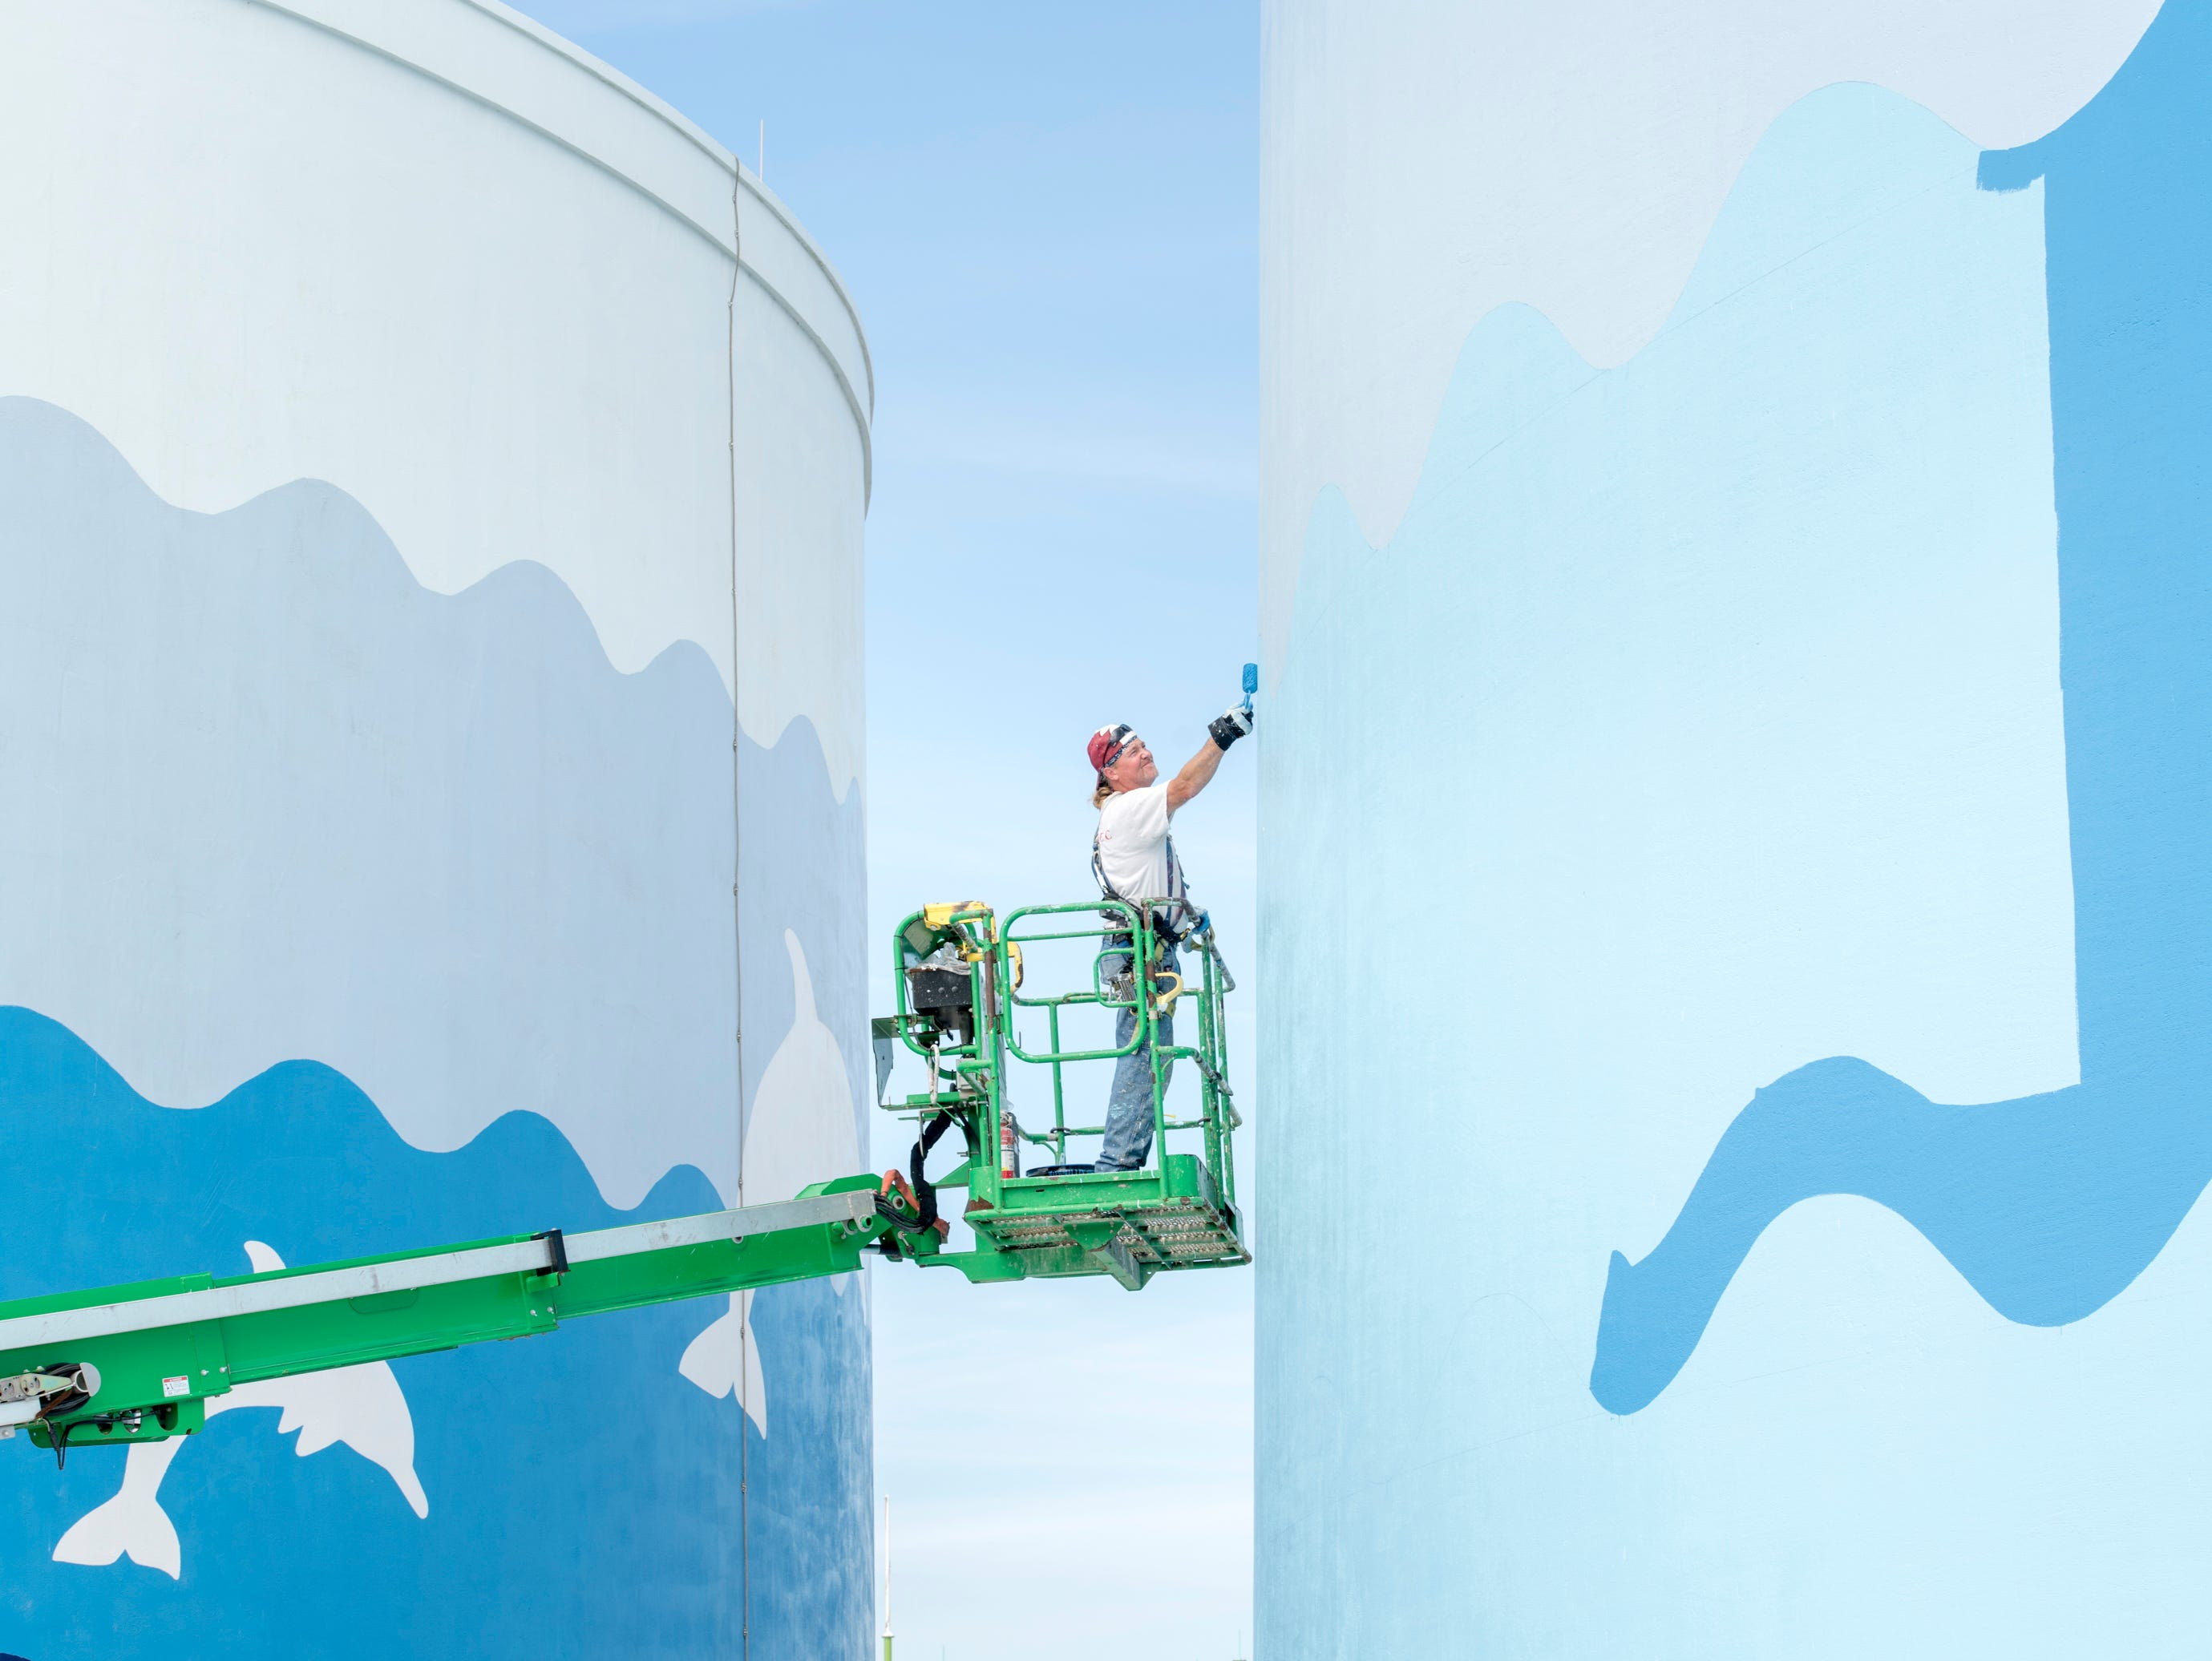 Rob Gaeth, of Jetco Ltd., paints the newest water tower along Pensacola Beach Blvd. in Pensacola Beach on Thursday, April 11, 2019.